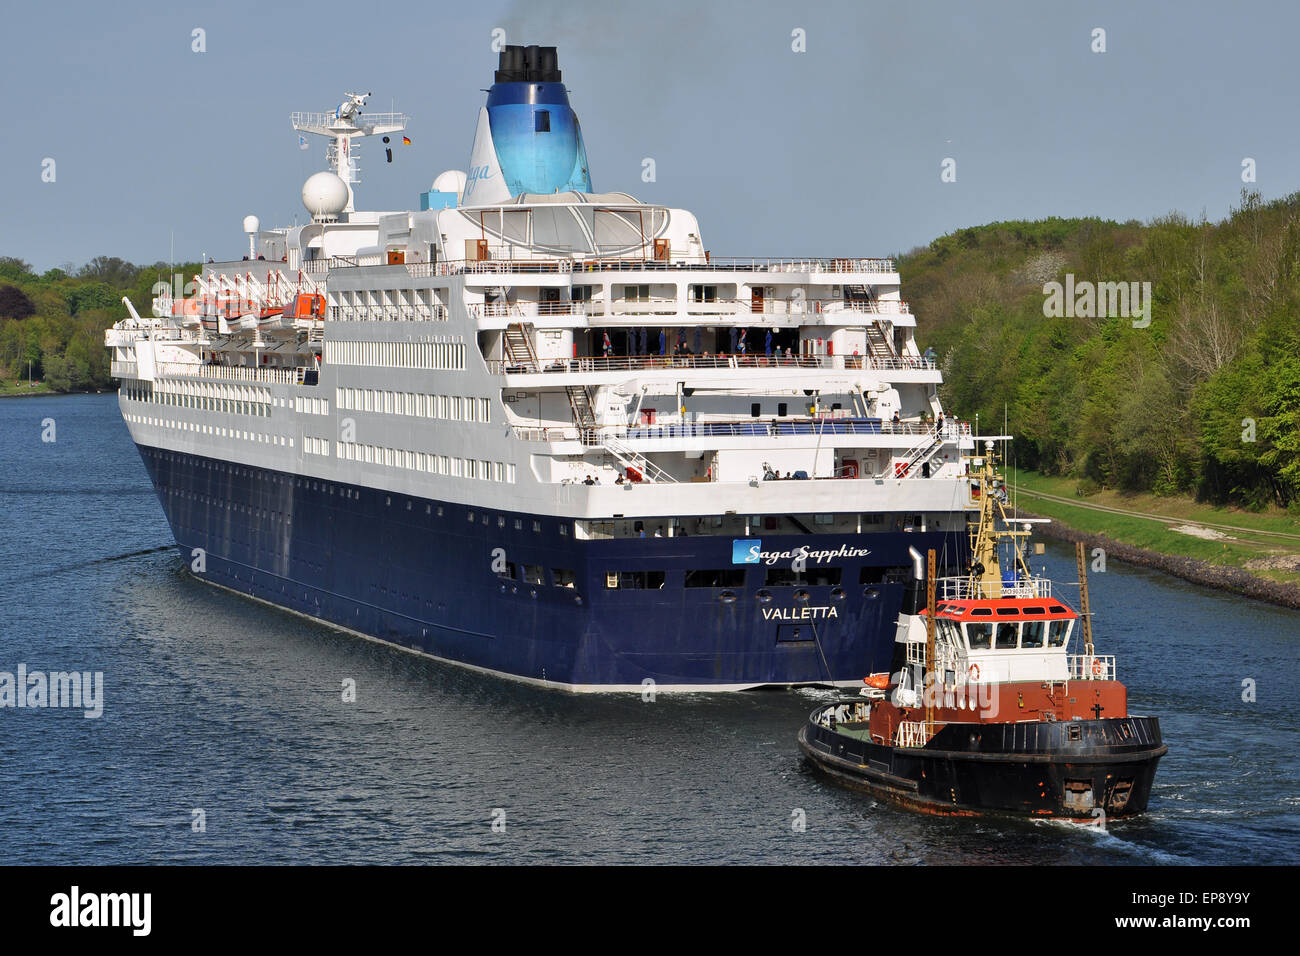 Cruiseship Saga Sapphire passing the Kiel Canal assisted by local tugboat Wal - Stock Image